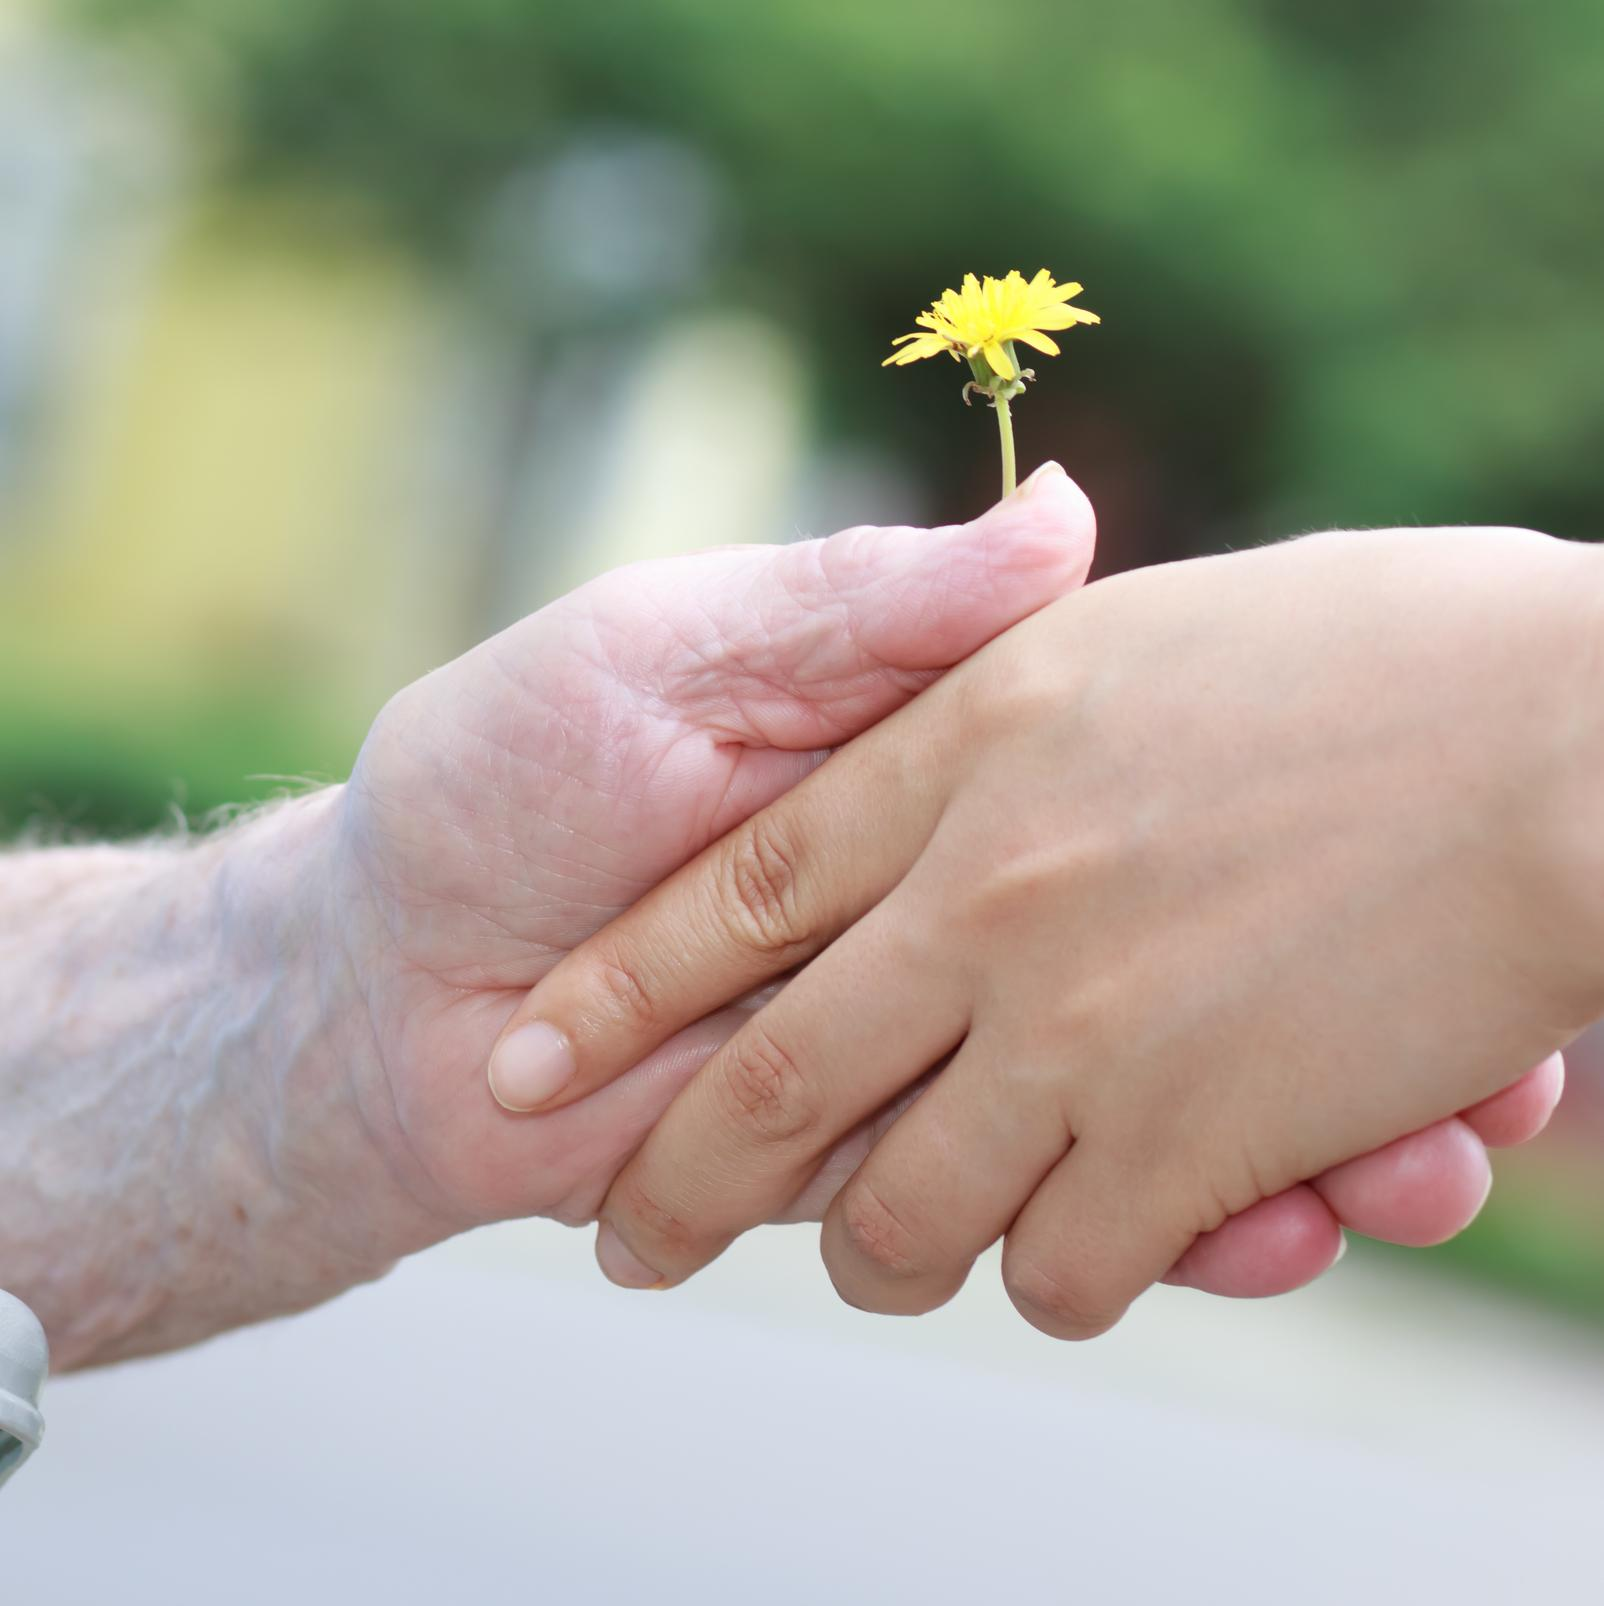 An older person's hand grasps a dandelion, alongside a younger person's hand.